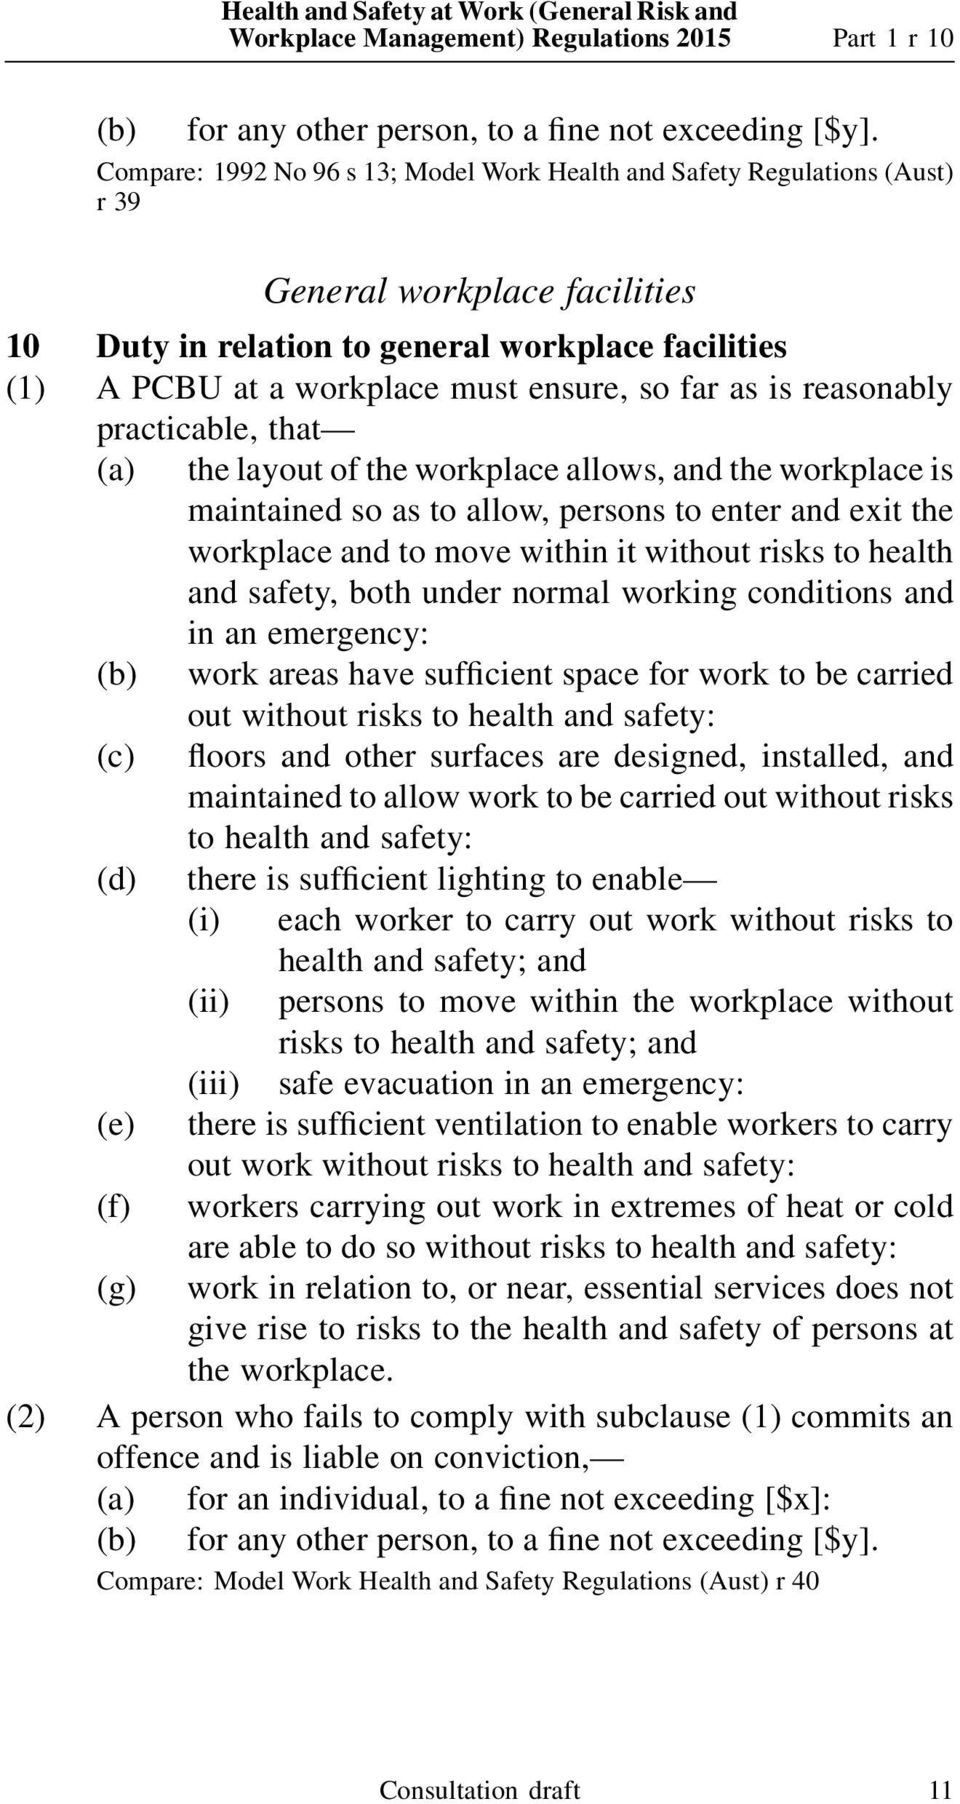 so far as is reasonably practicable, that (a) the layout of the workplace allows, and the workplace is maintained so as to allow, persons to enter and exit the workplace and to move within it without